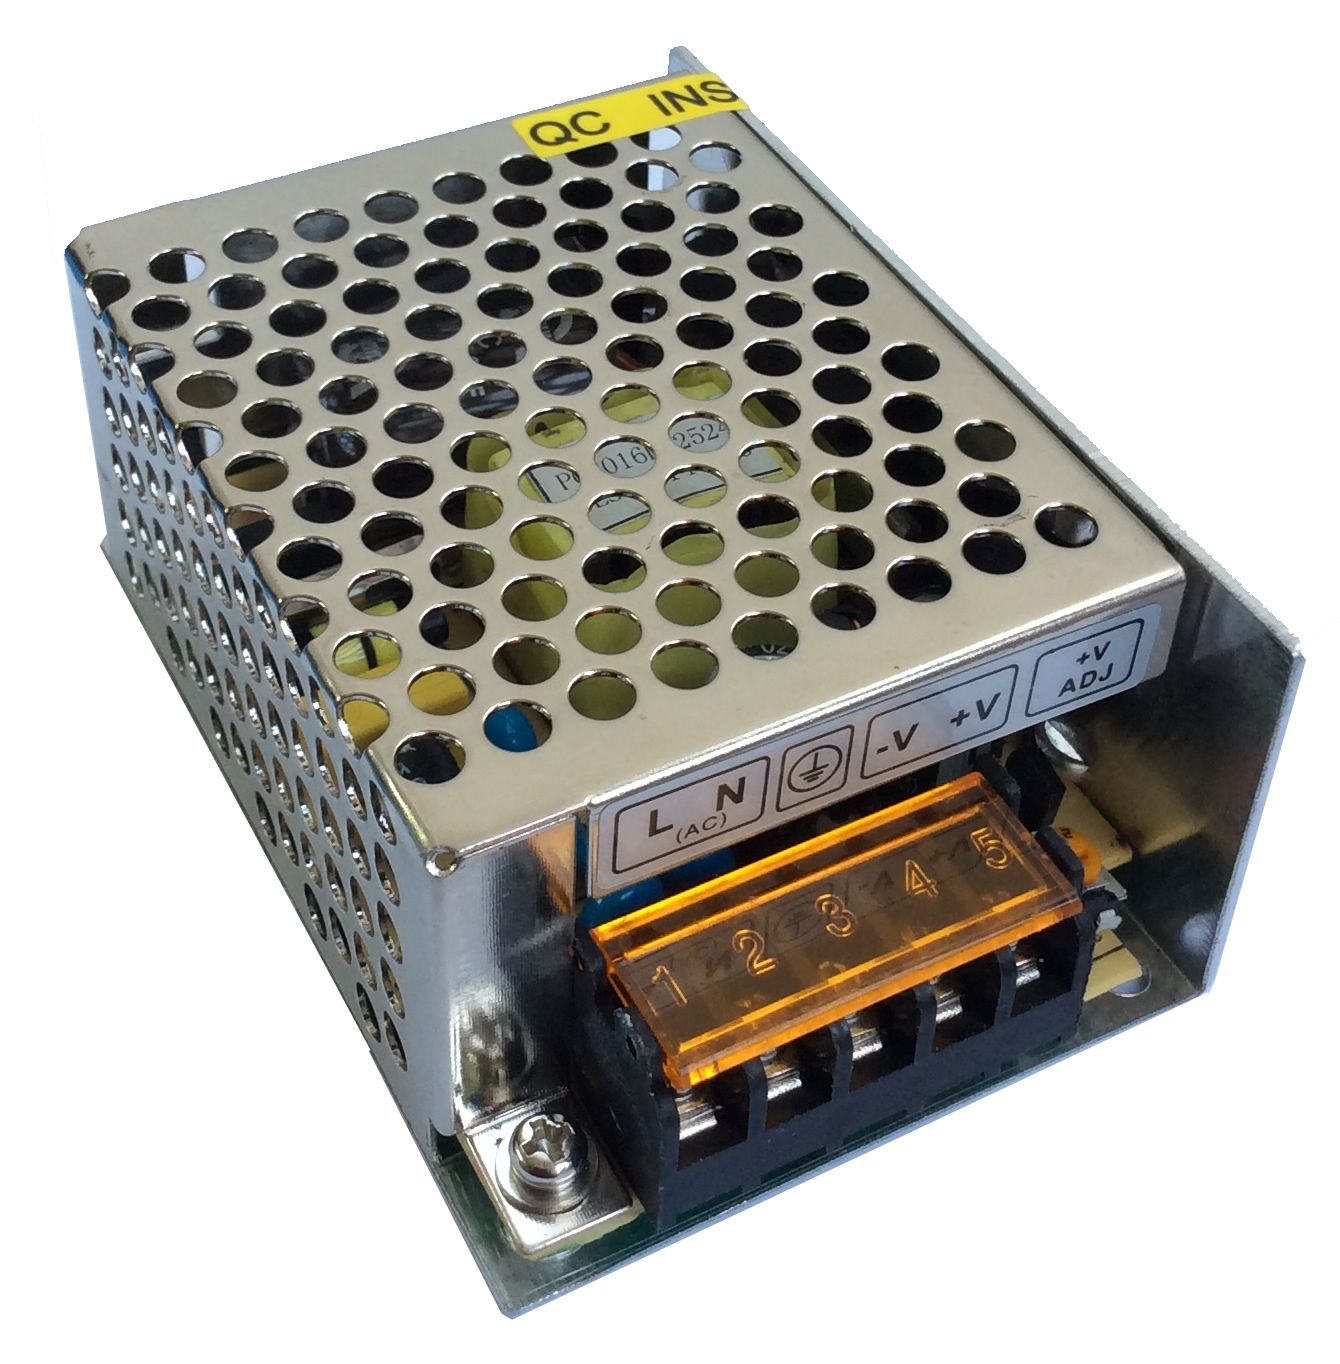 35W hot sell LED power supply,  aotomation power supply